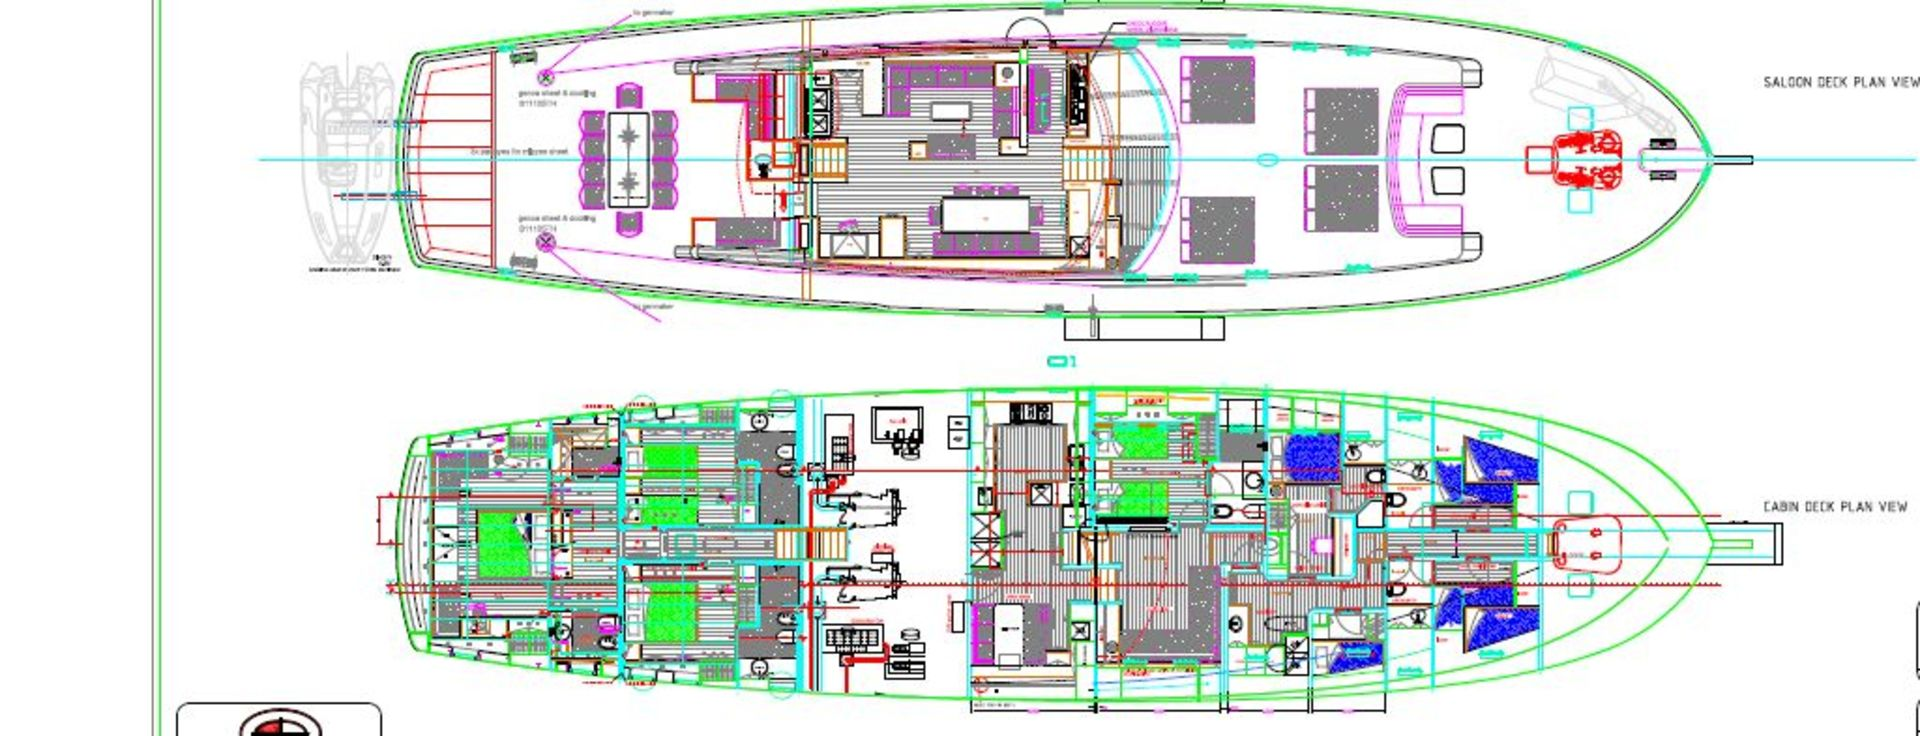 sailing nour layout interior